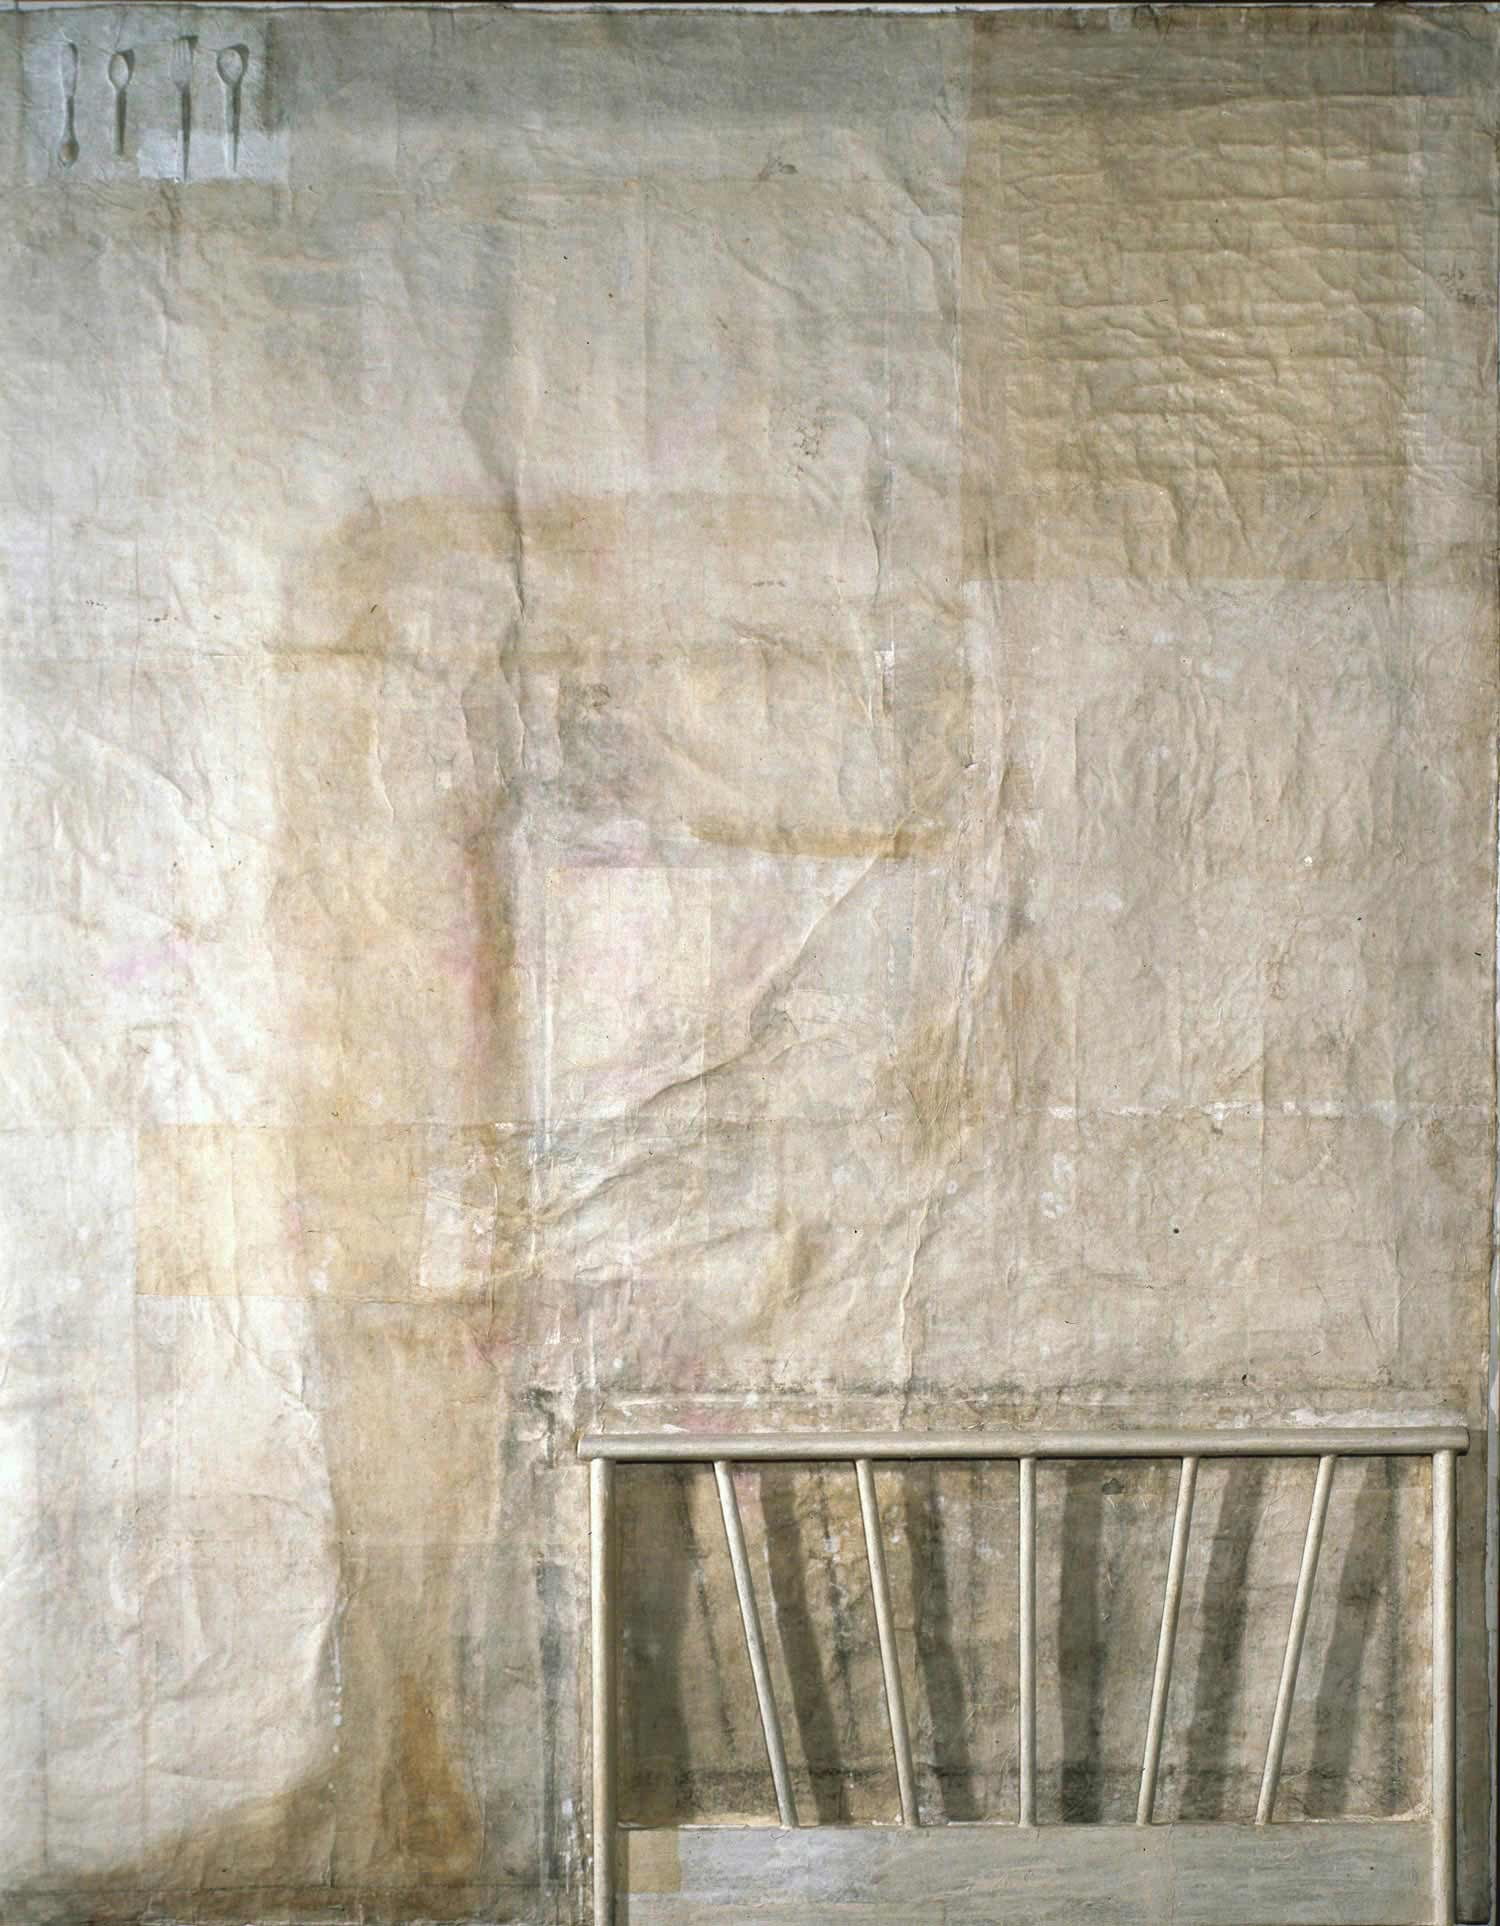 Leg and bed on table   2007    Mixed media, washi on canvas   90.6x71.5 inches (227.3x181.8cm)